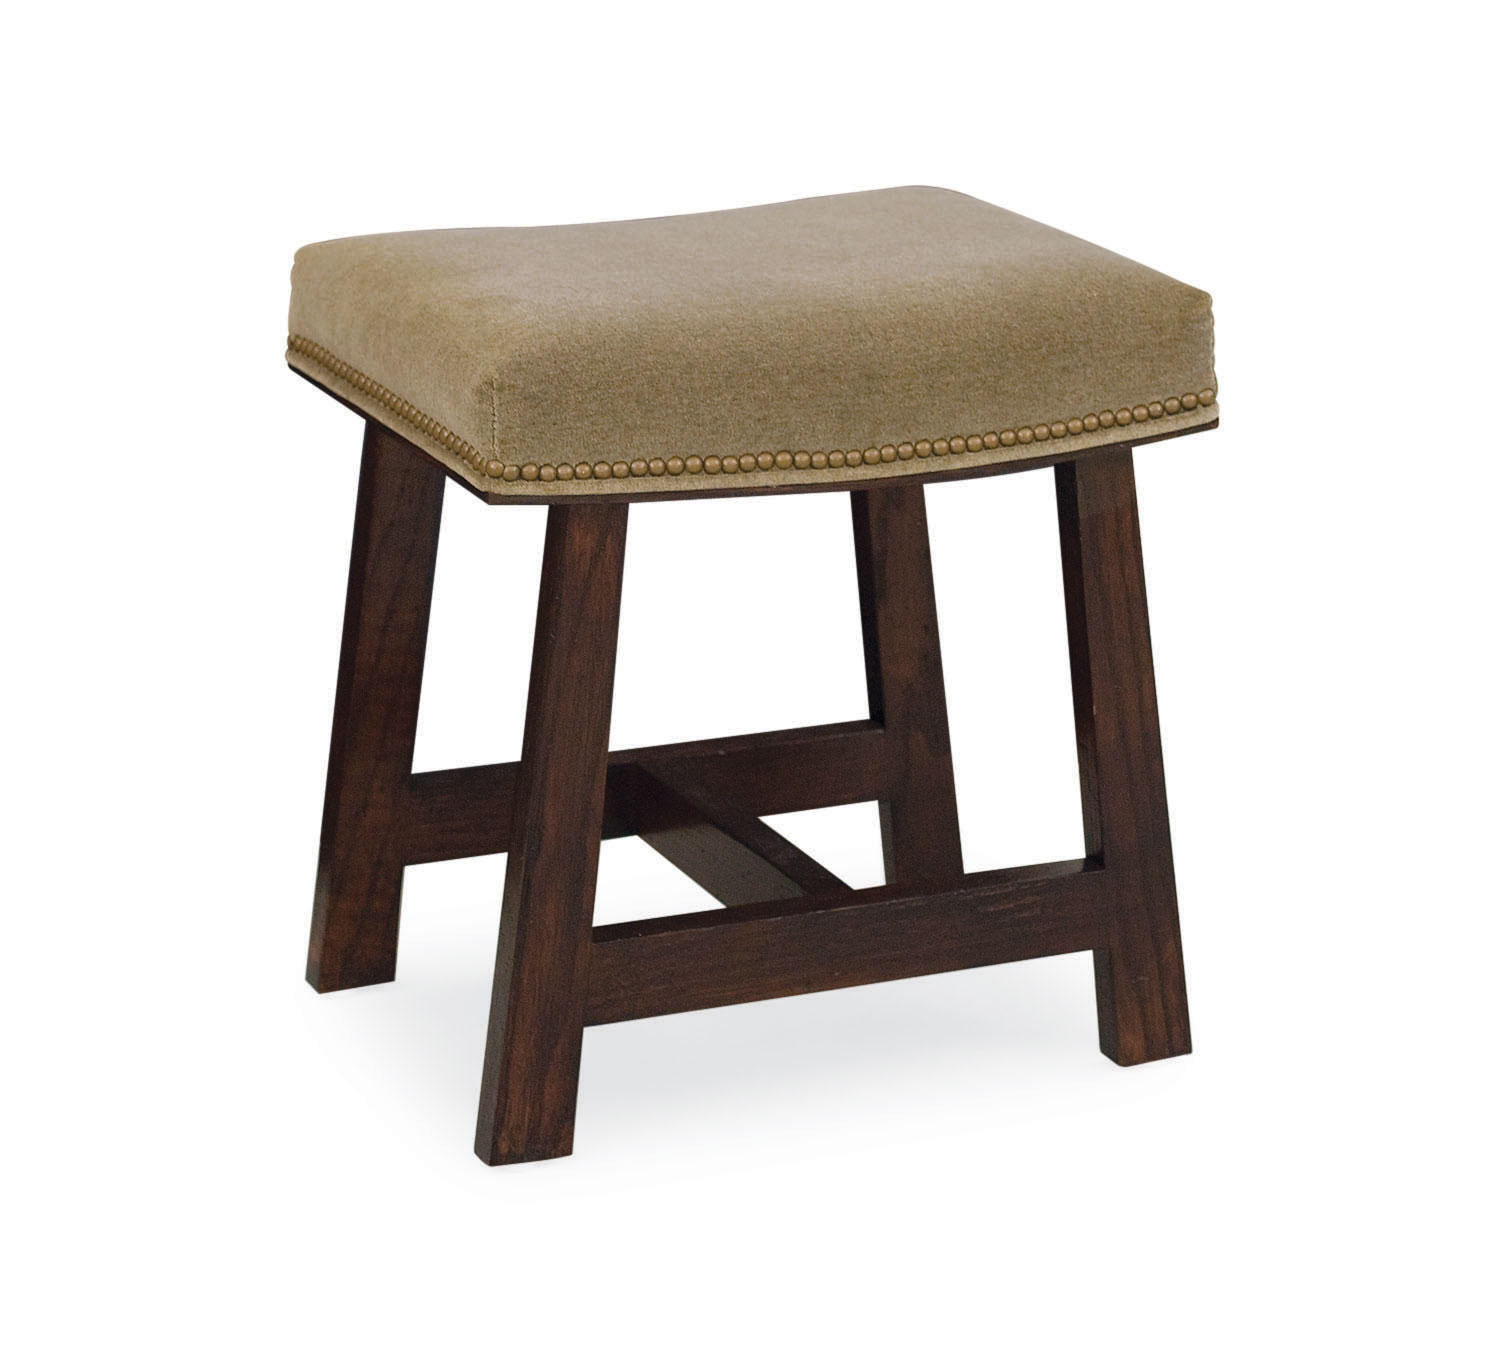 ottomans benches upscale ottomans leather wood upholstered benches paul rich